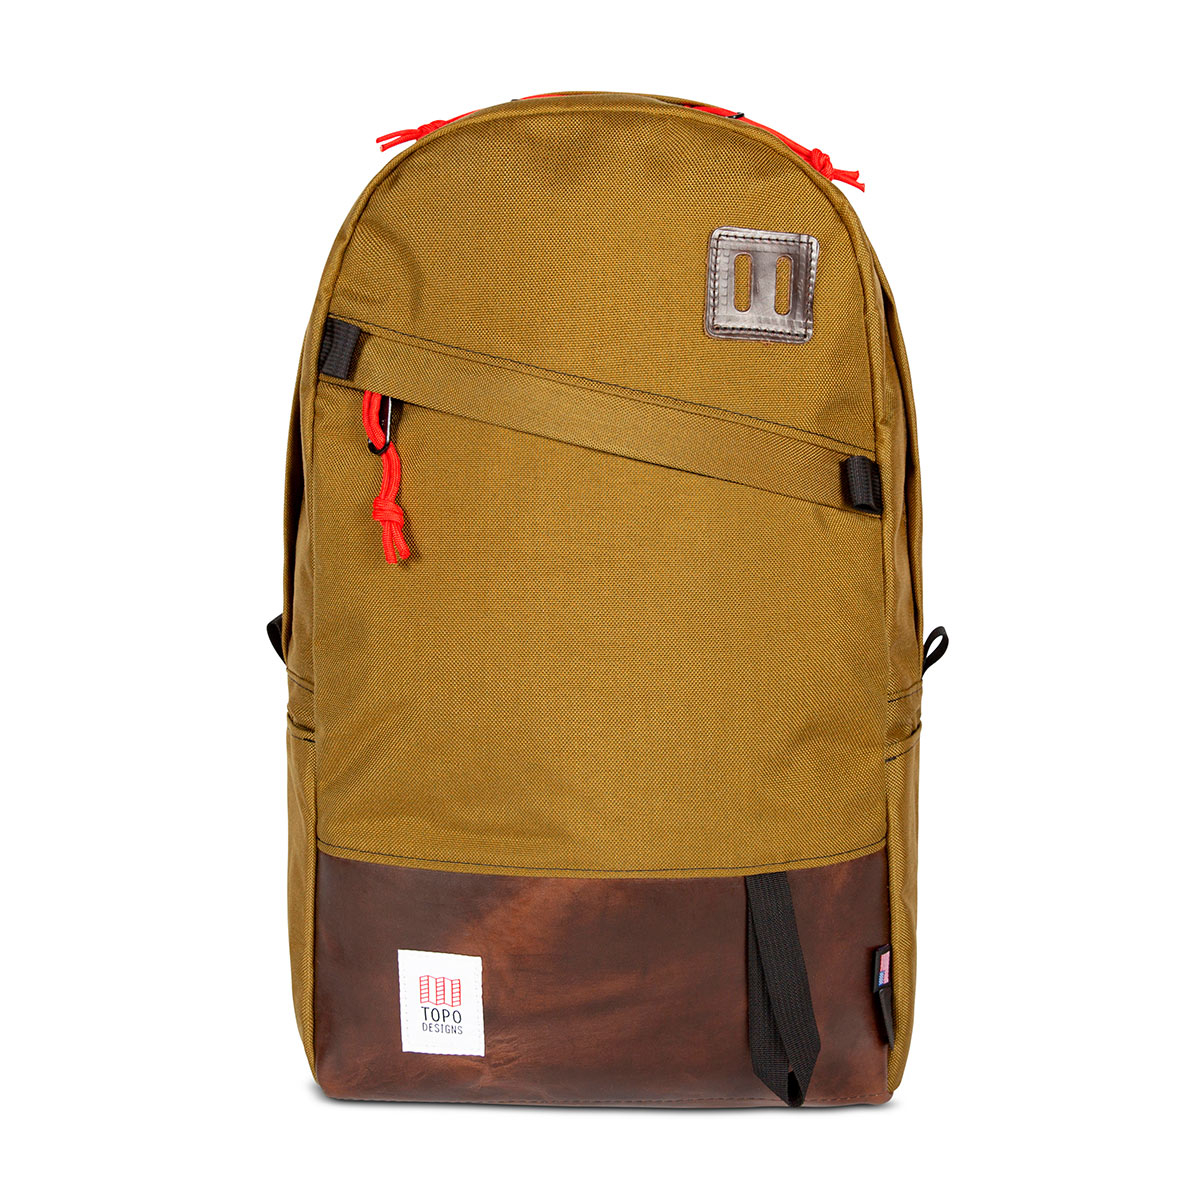 Topo Designs Daypack Duck Brown/Dark Brown Leather, sterke rugzak in 1000D Cordura met 15 inch laptopvak